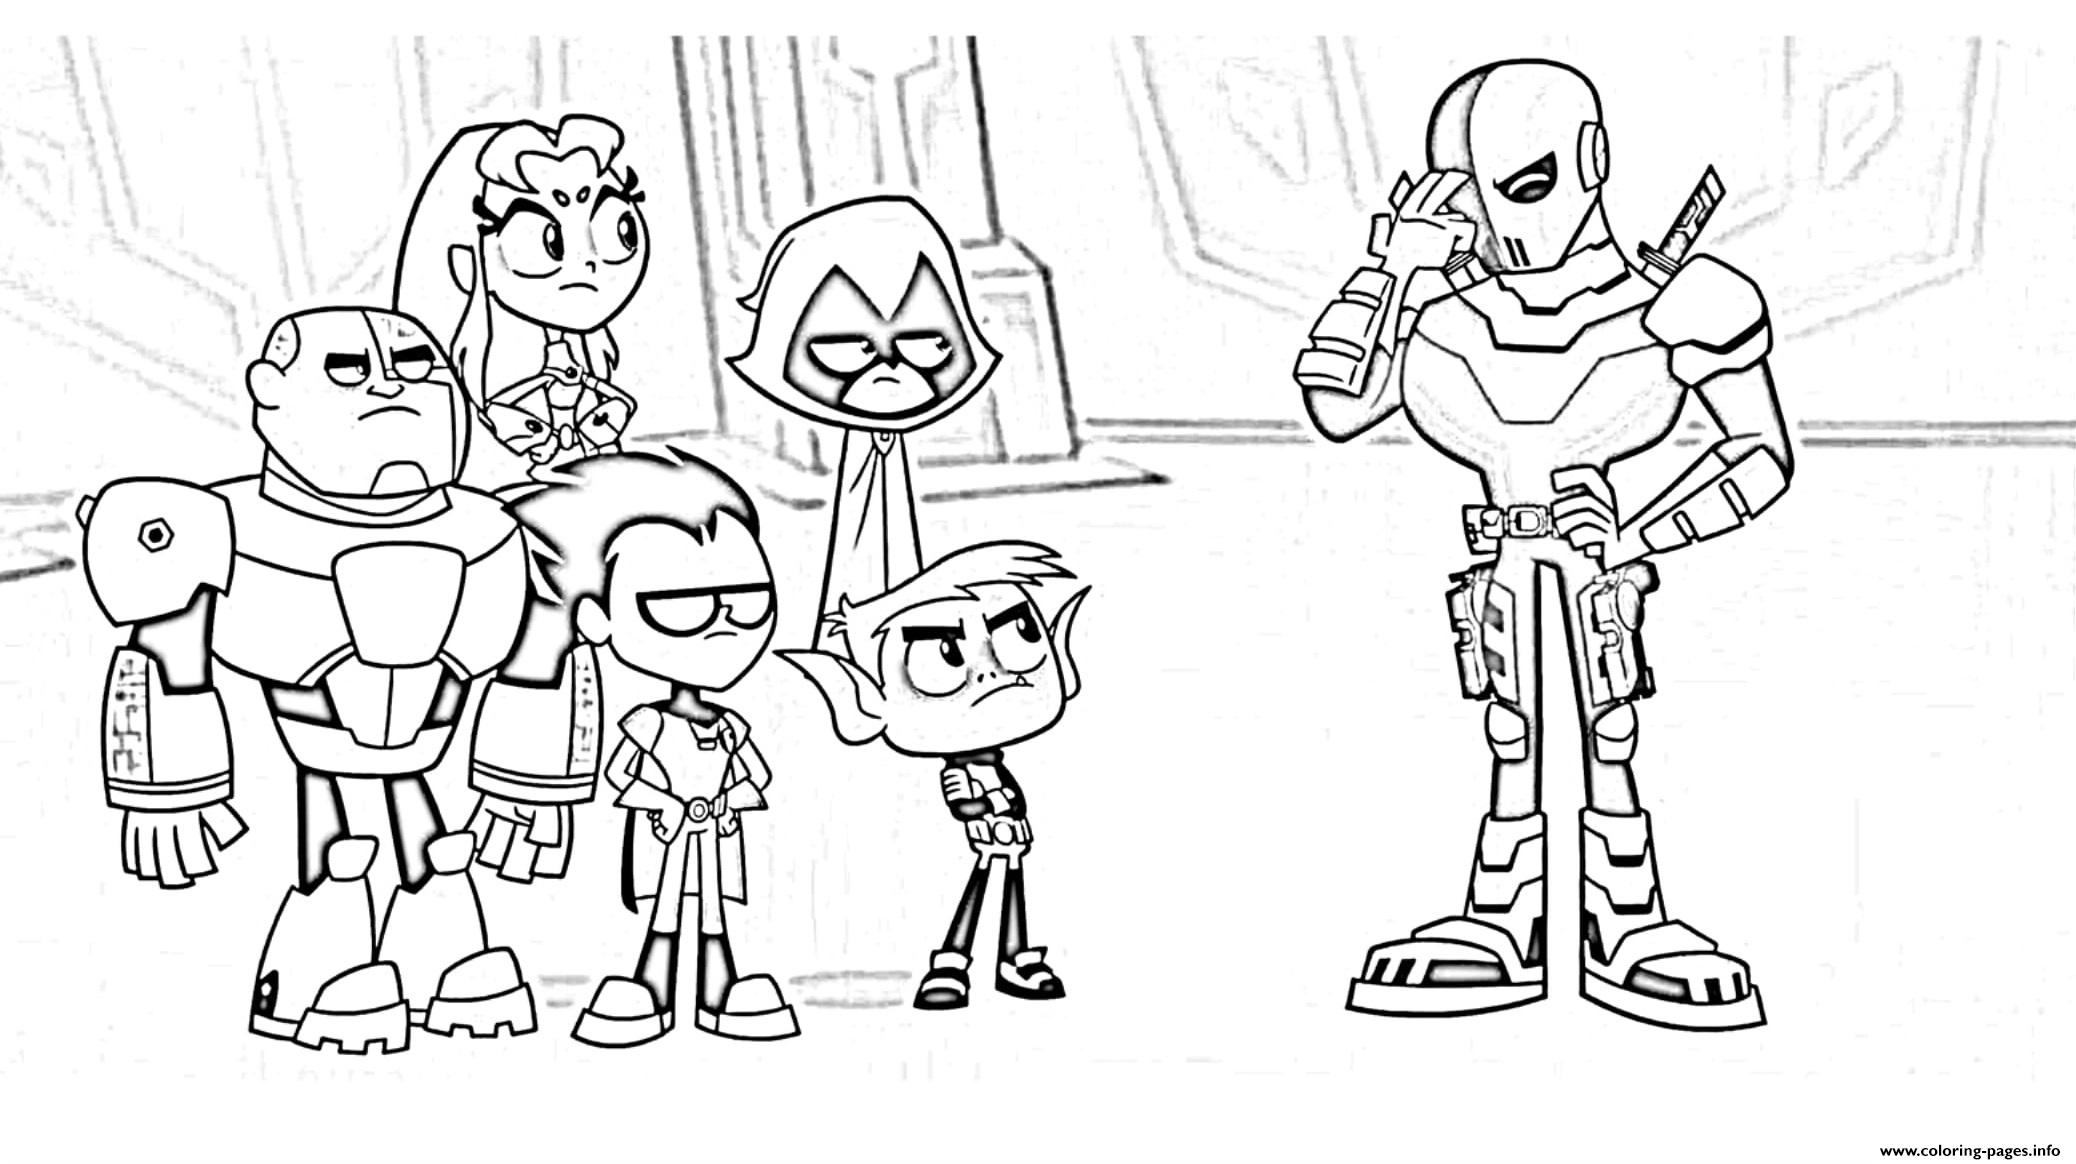 Teen Titans Go Cartoon Kids Coloring Pages Printable